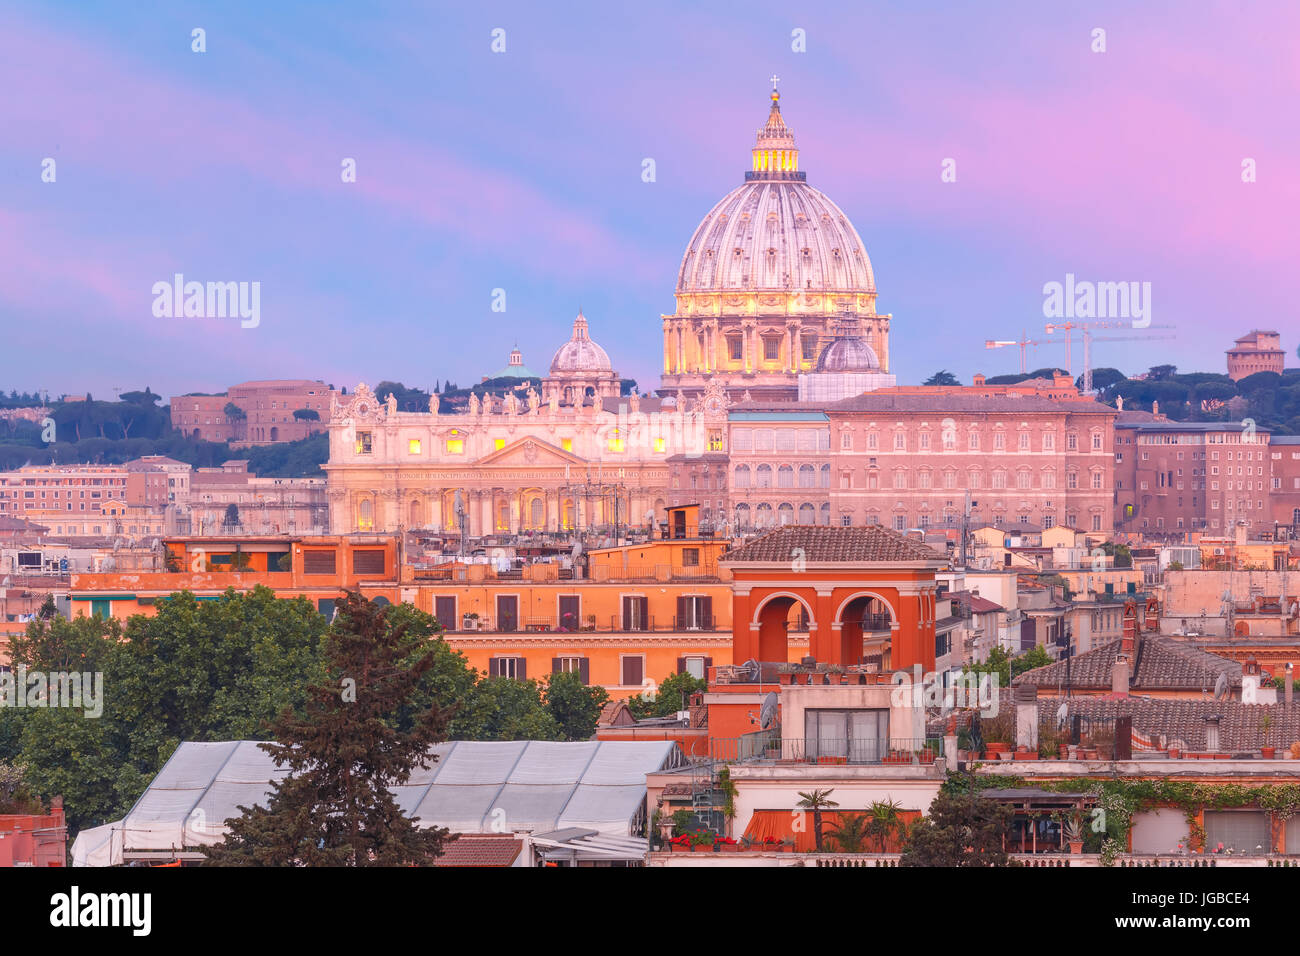 Saint Peter Cathedral at sunset in Rome, Italy. - Stock Image